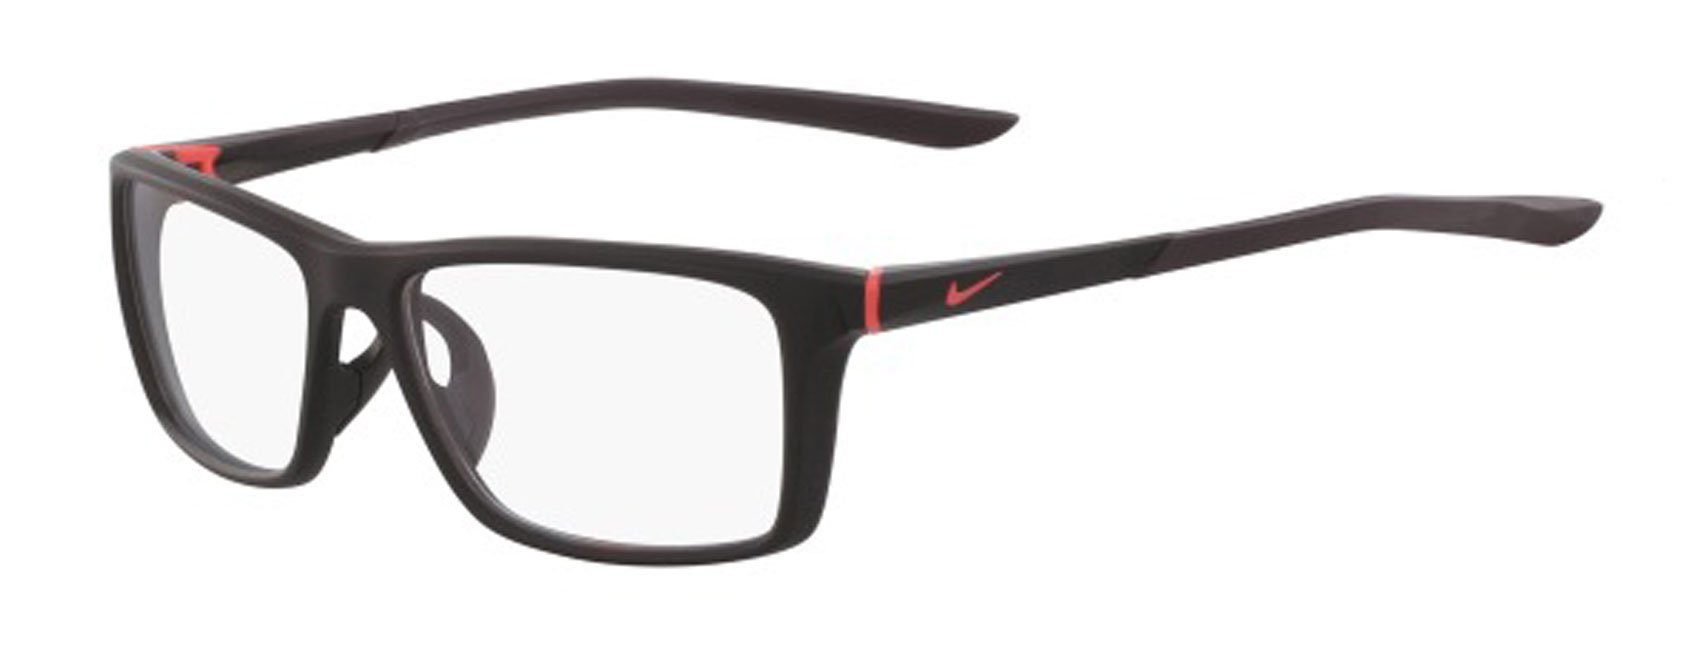 Nike Lead Glasses Matte Black 7084 01